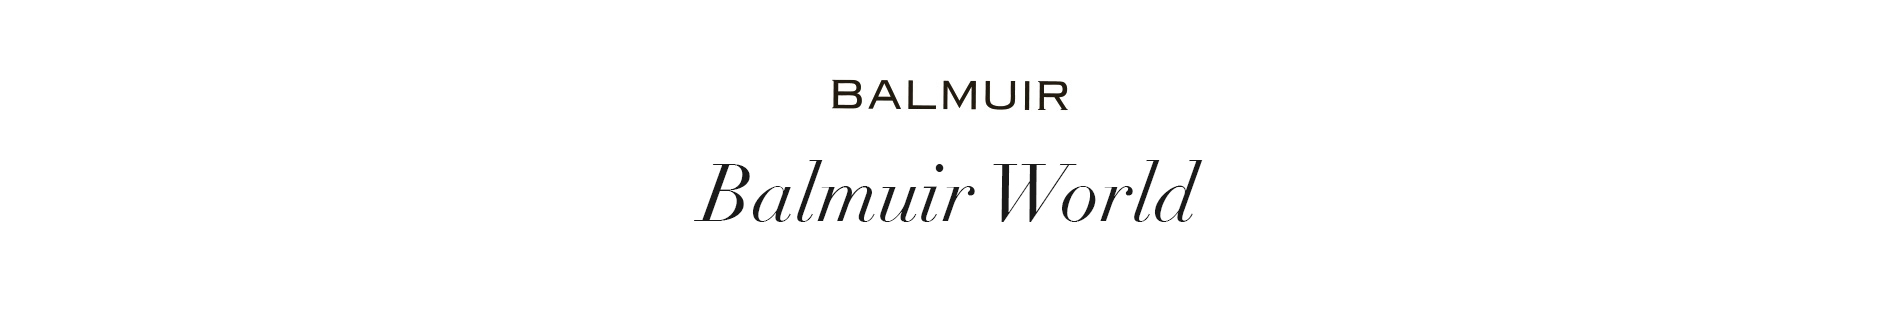 Balmuir World